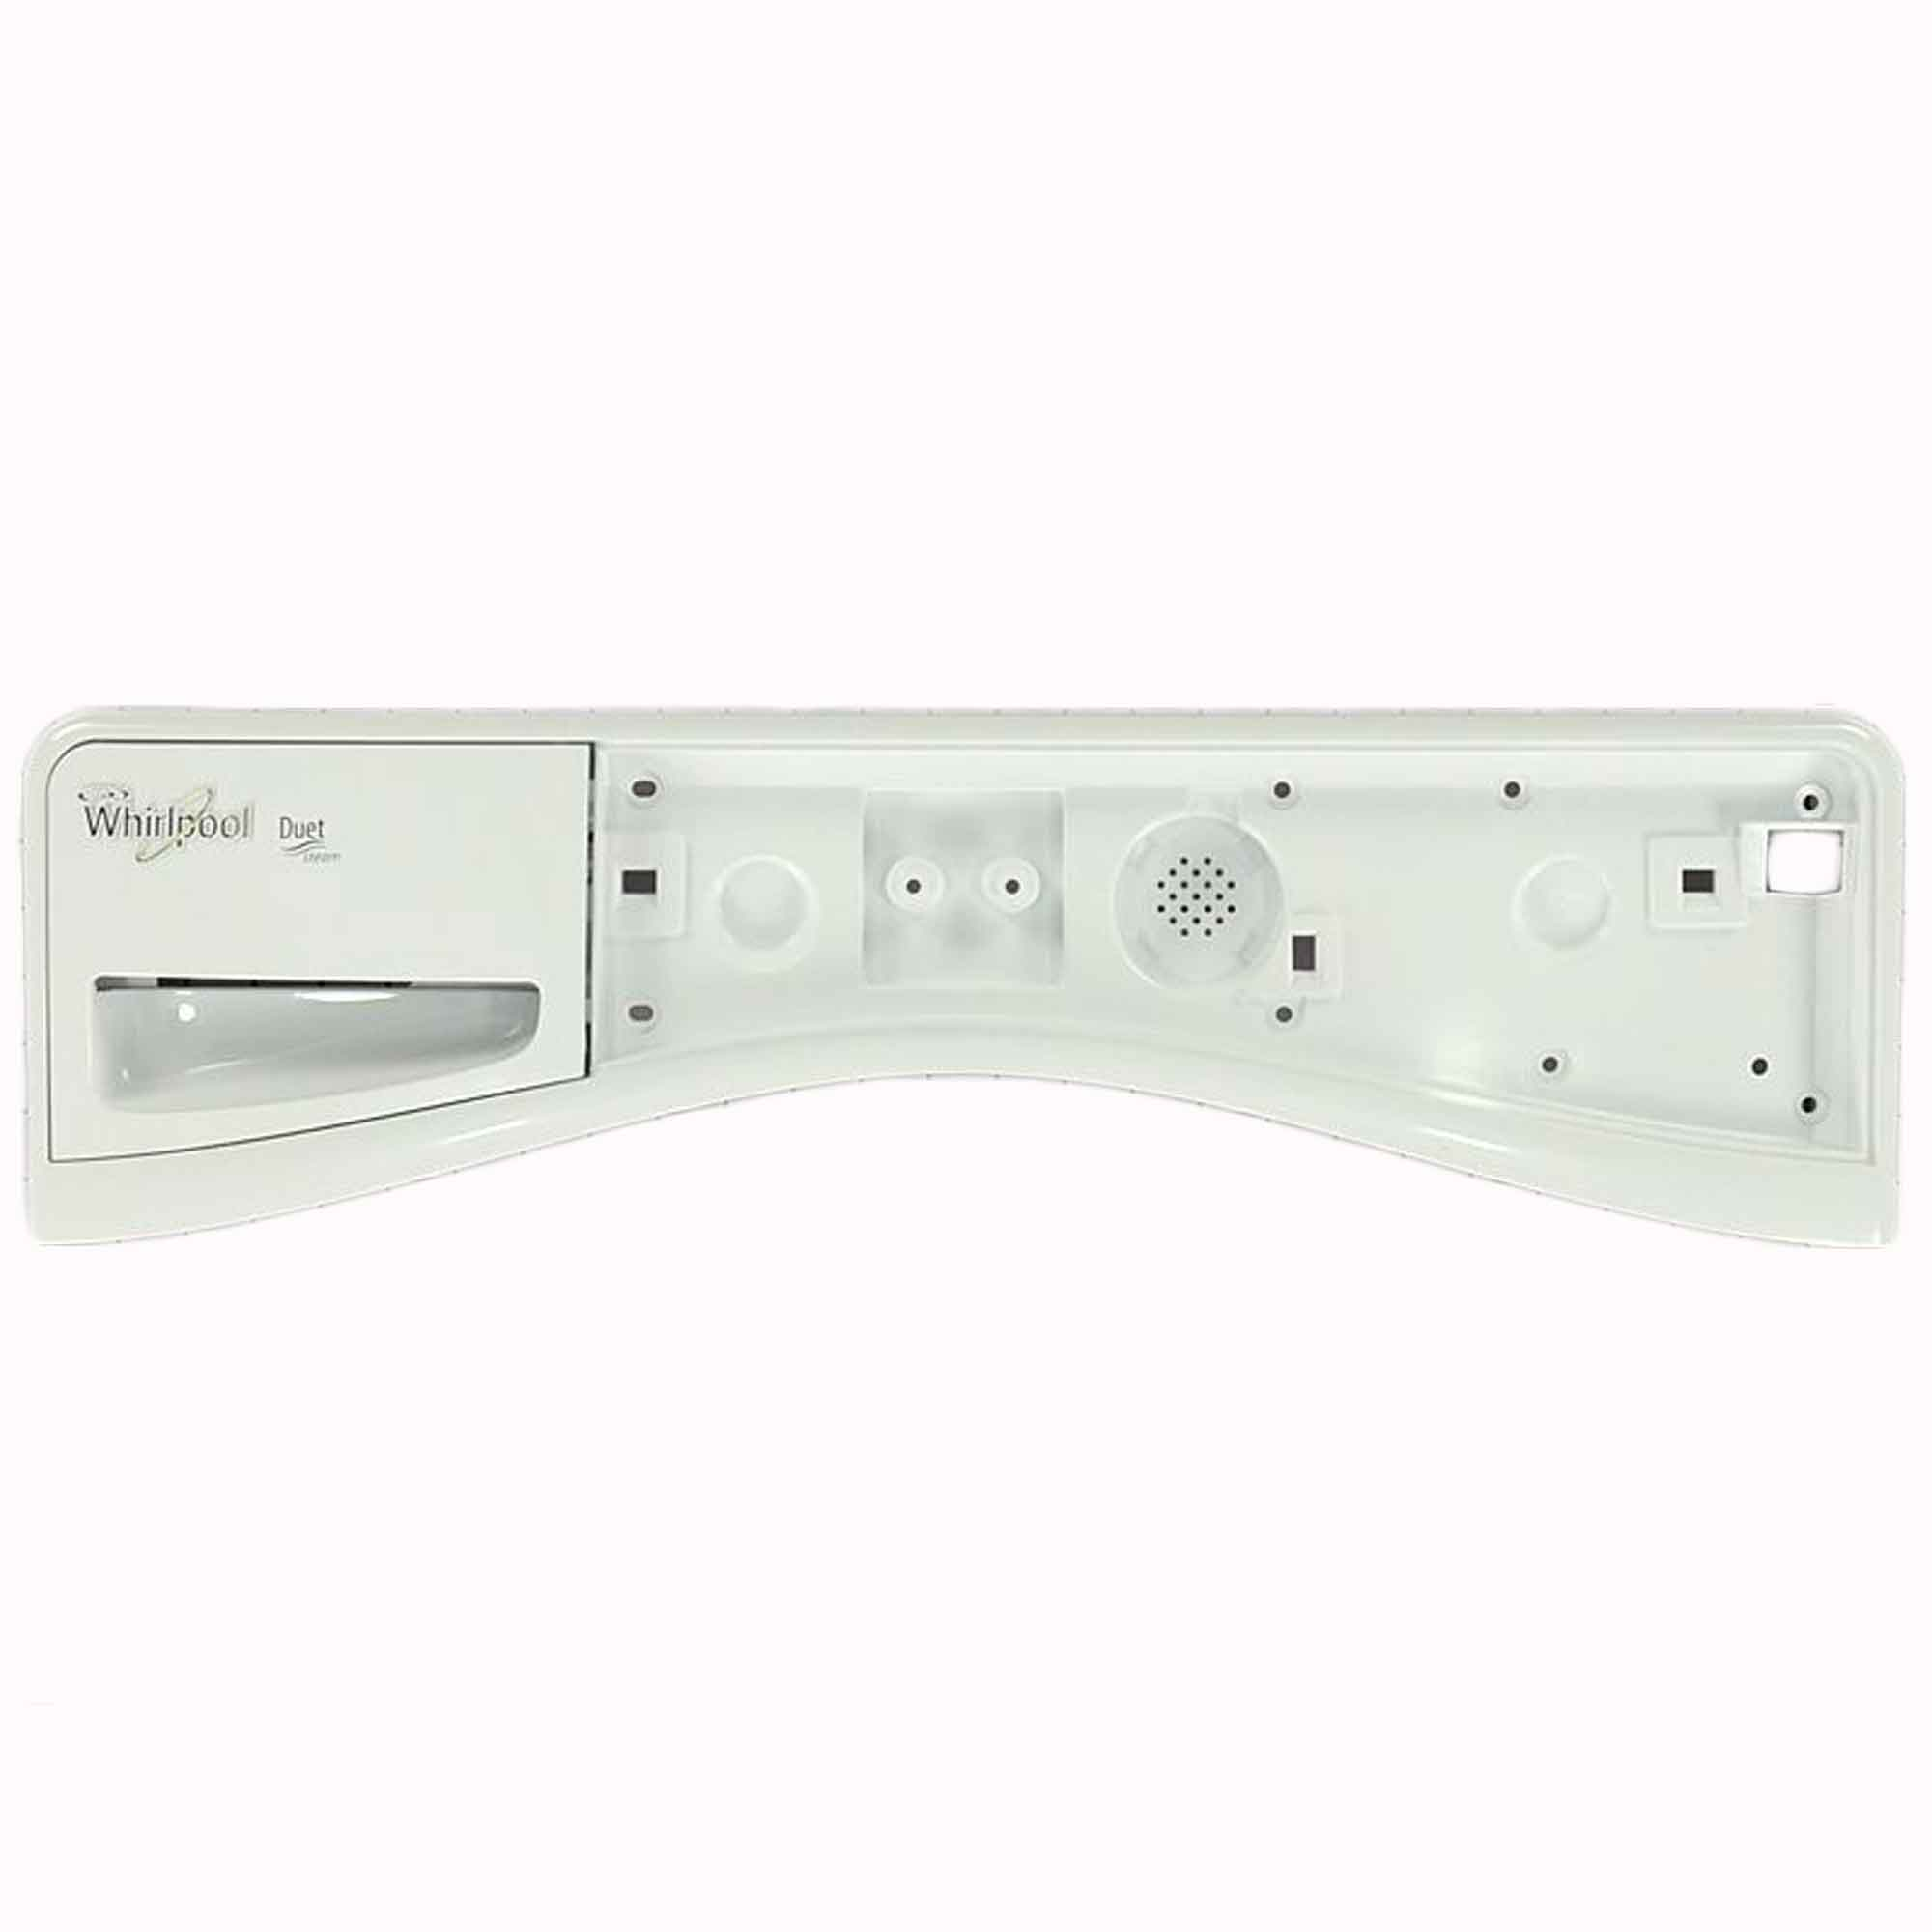 WPW10446408 For Whirlpool Washing Machine Control Panel